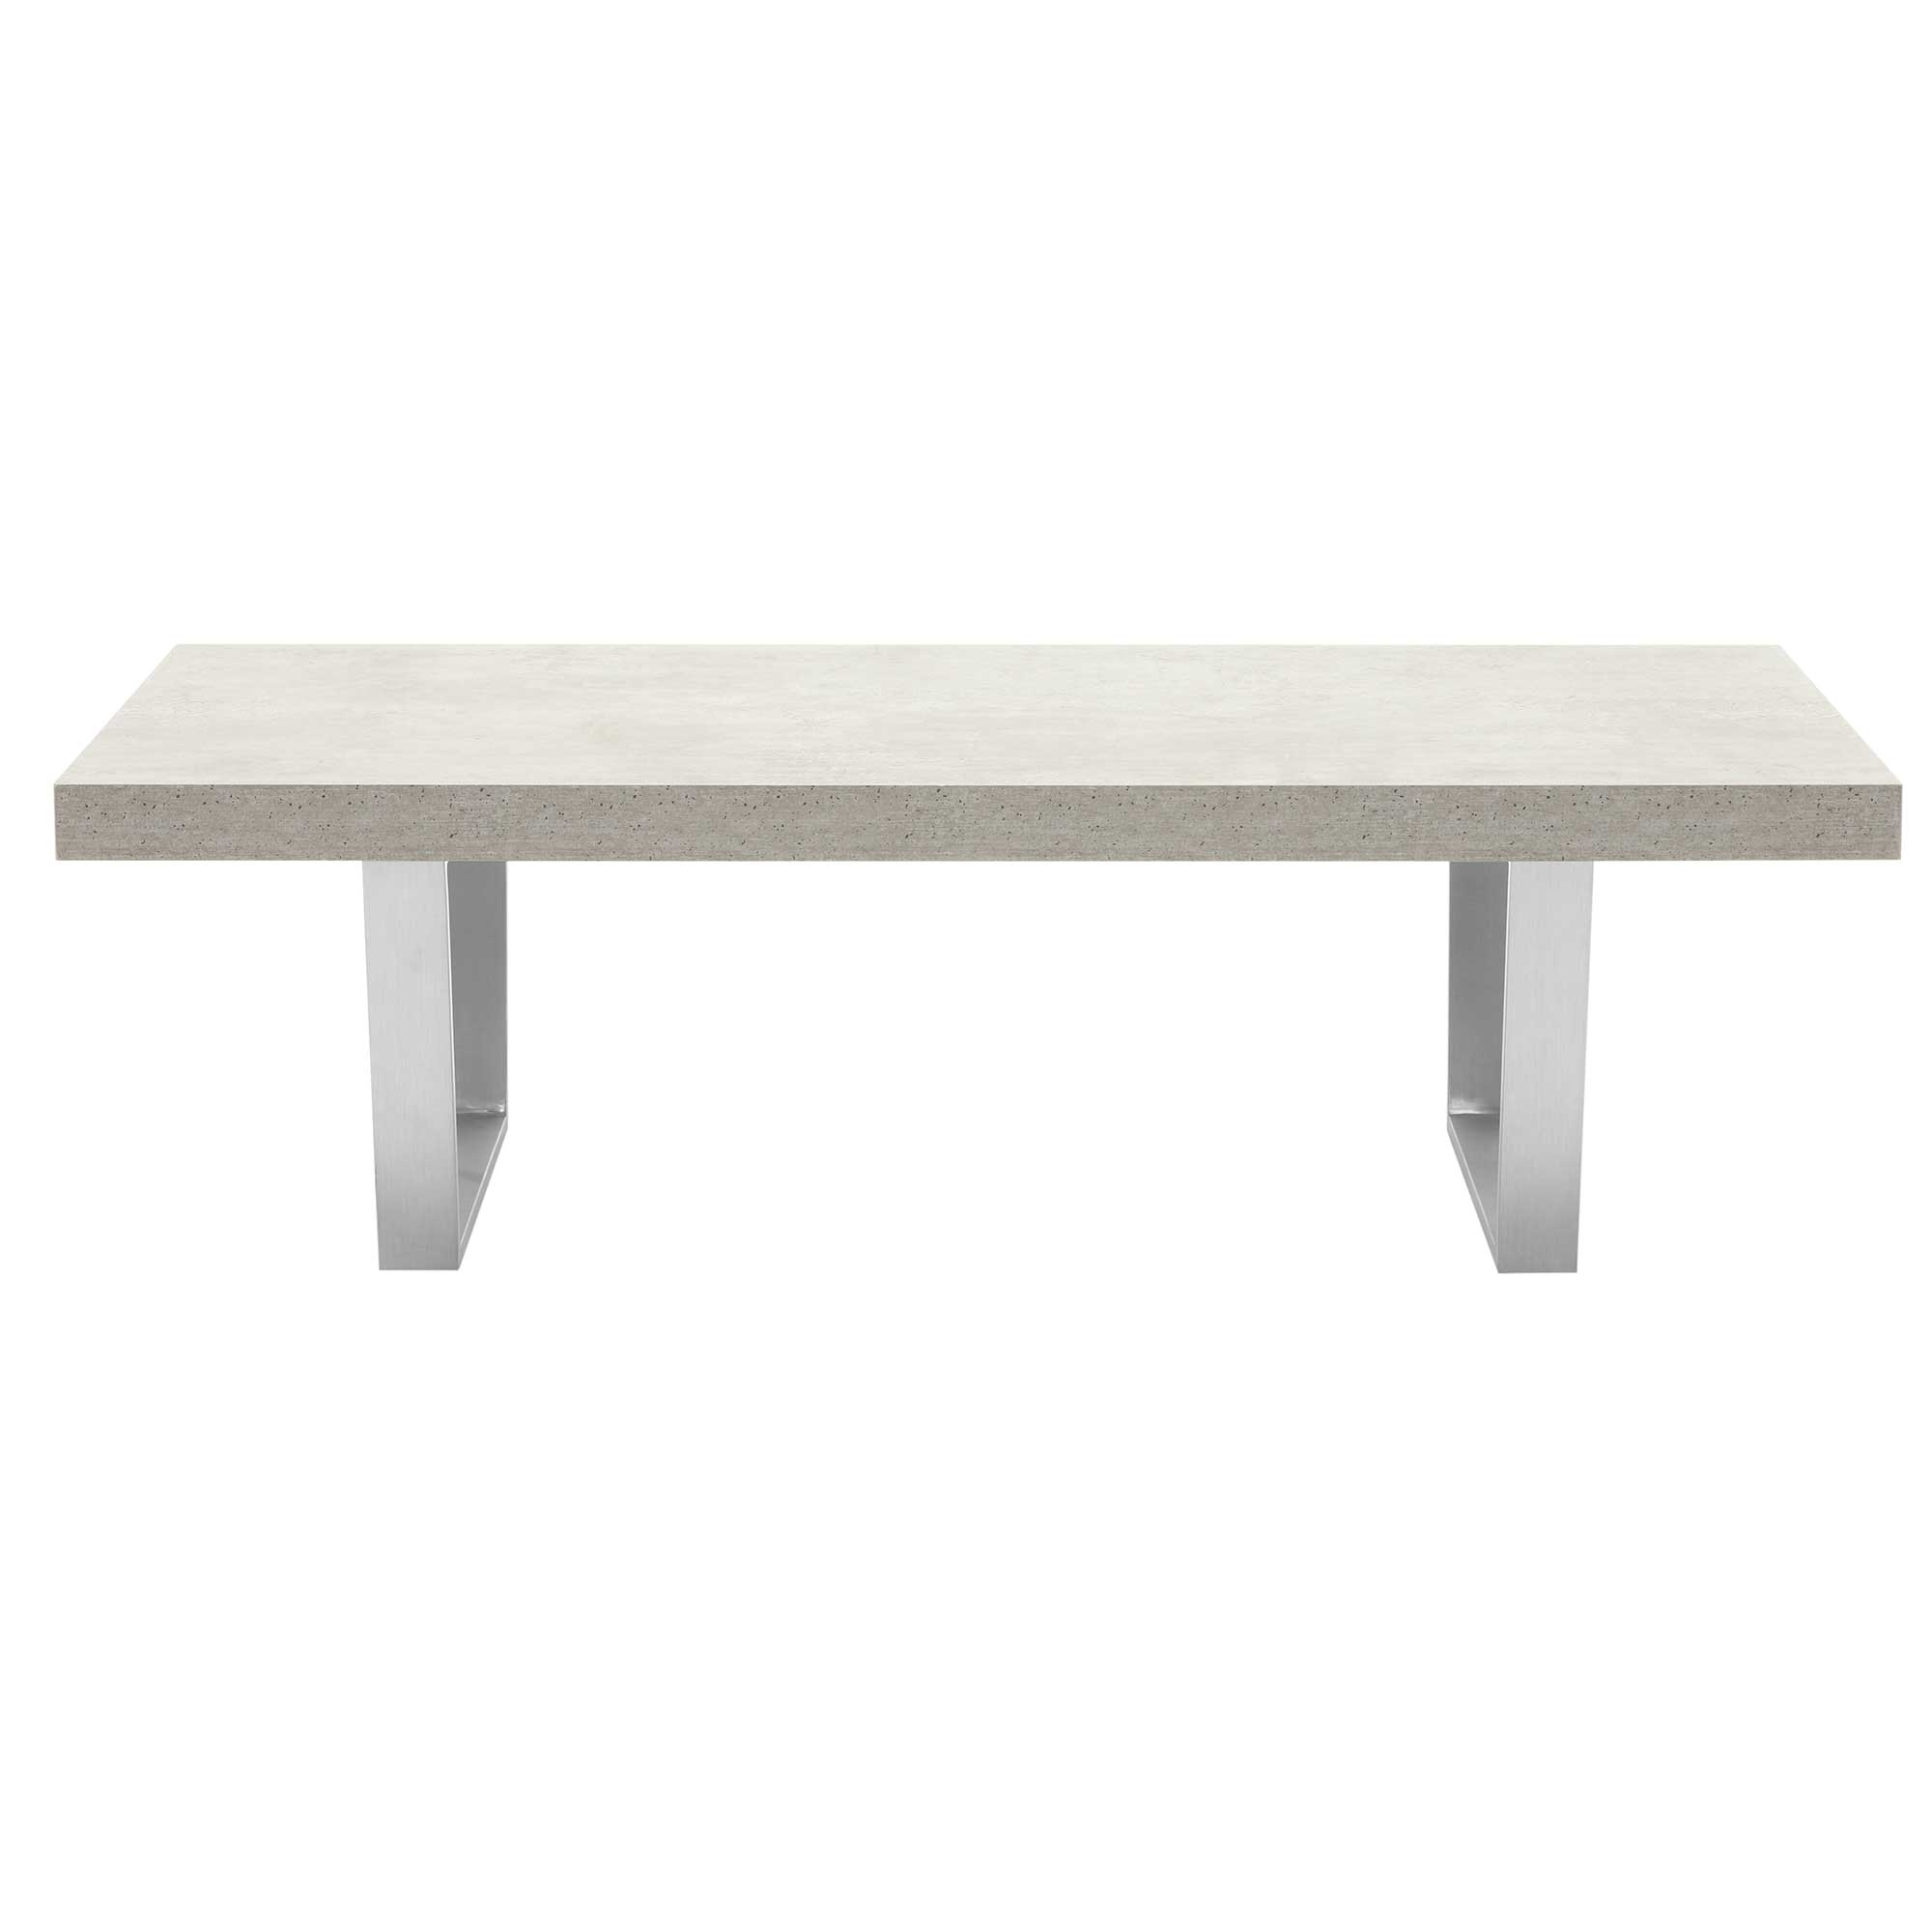 CONCRETE LOOK COFFEE TABLE - FRONT DETAIL